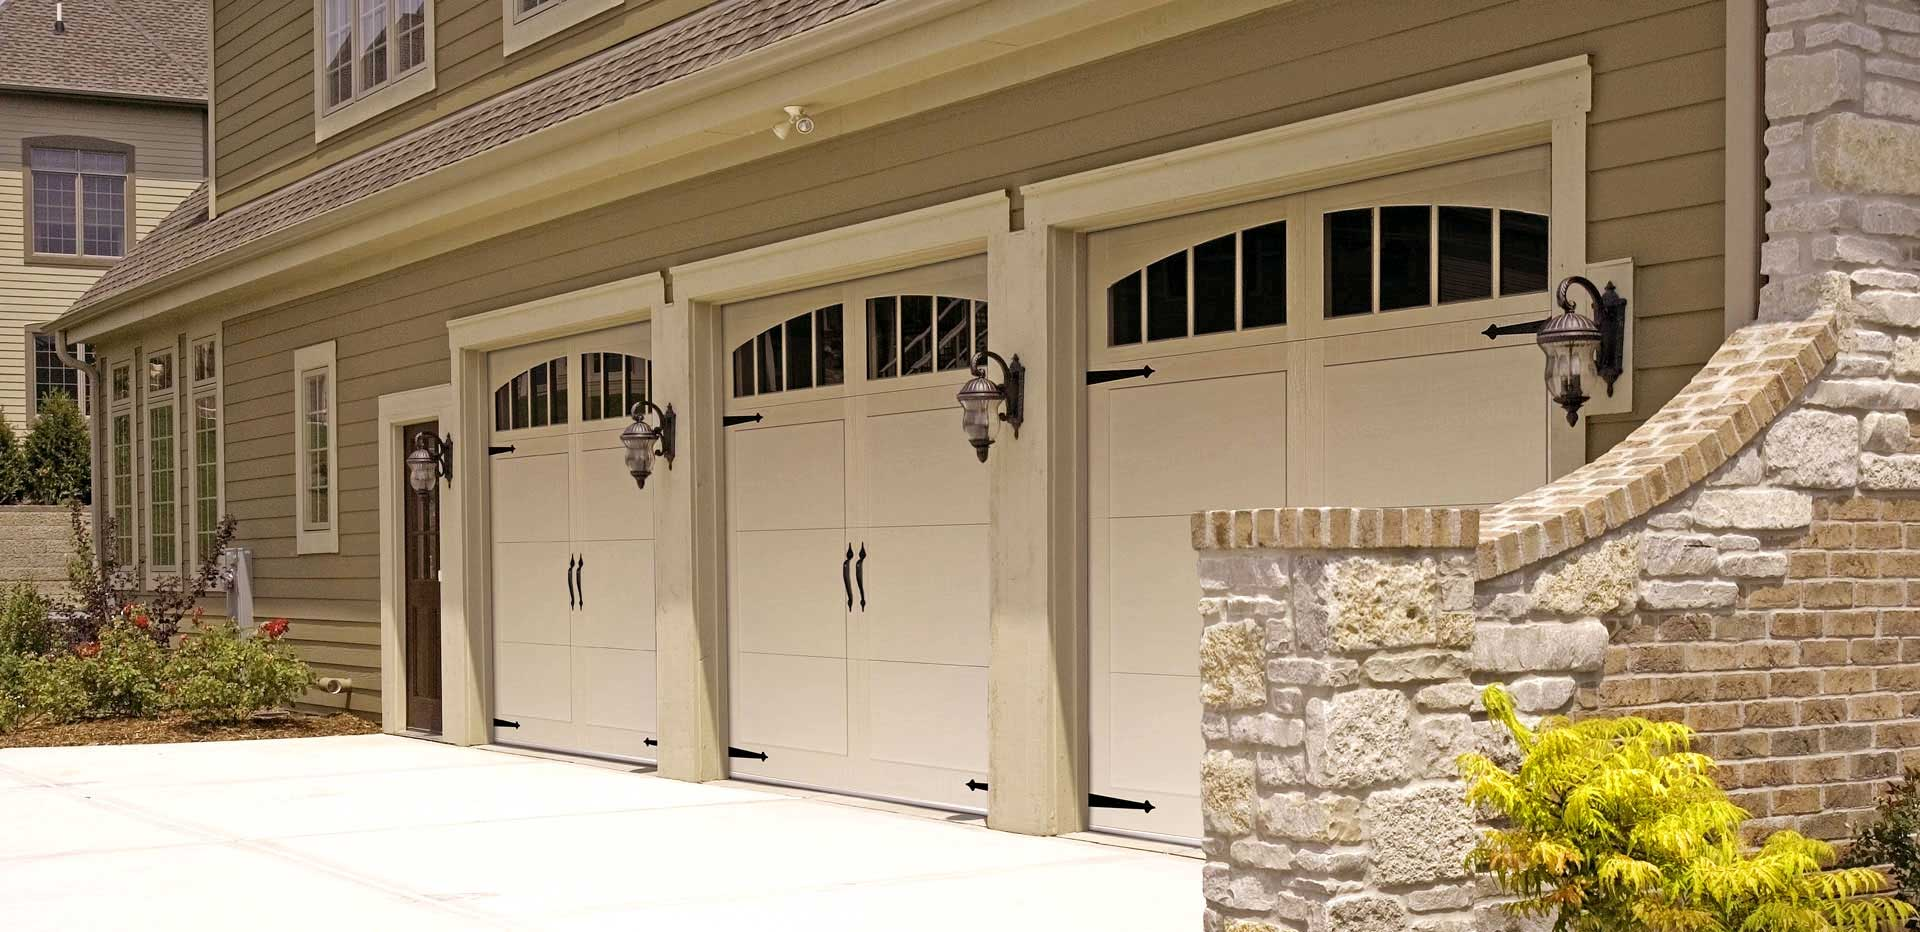 932 #AB9E20 Garage Door Installation A1 Garage Doors Sedona AZ save image Garage Doors Installers 37771920